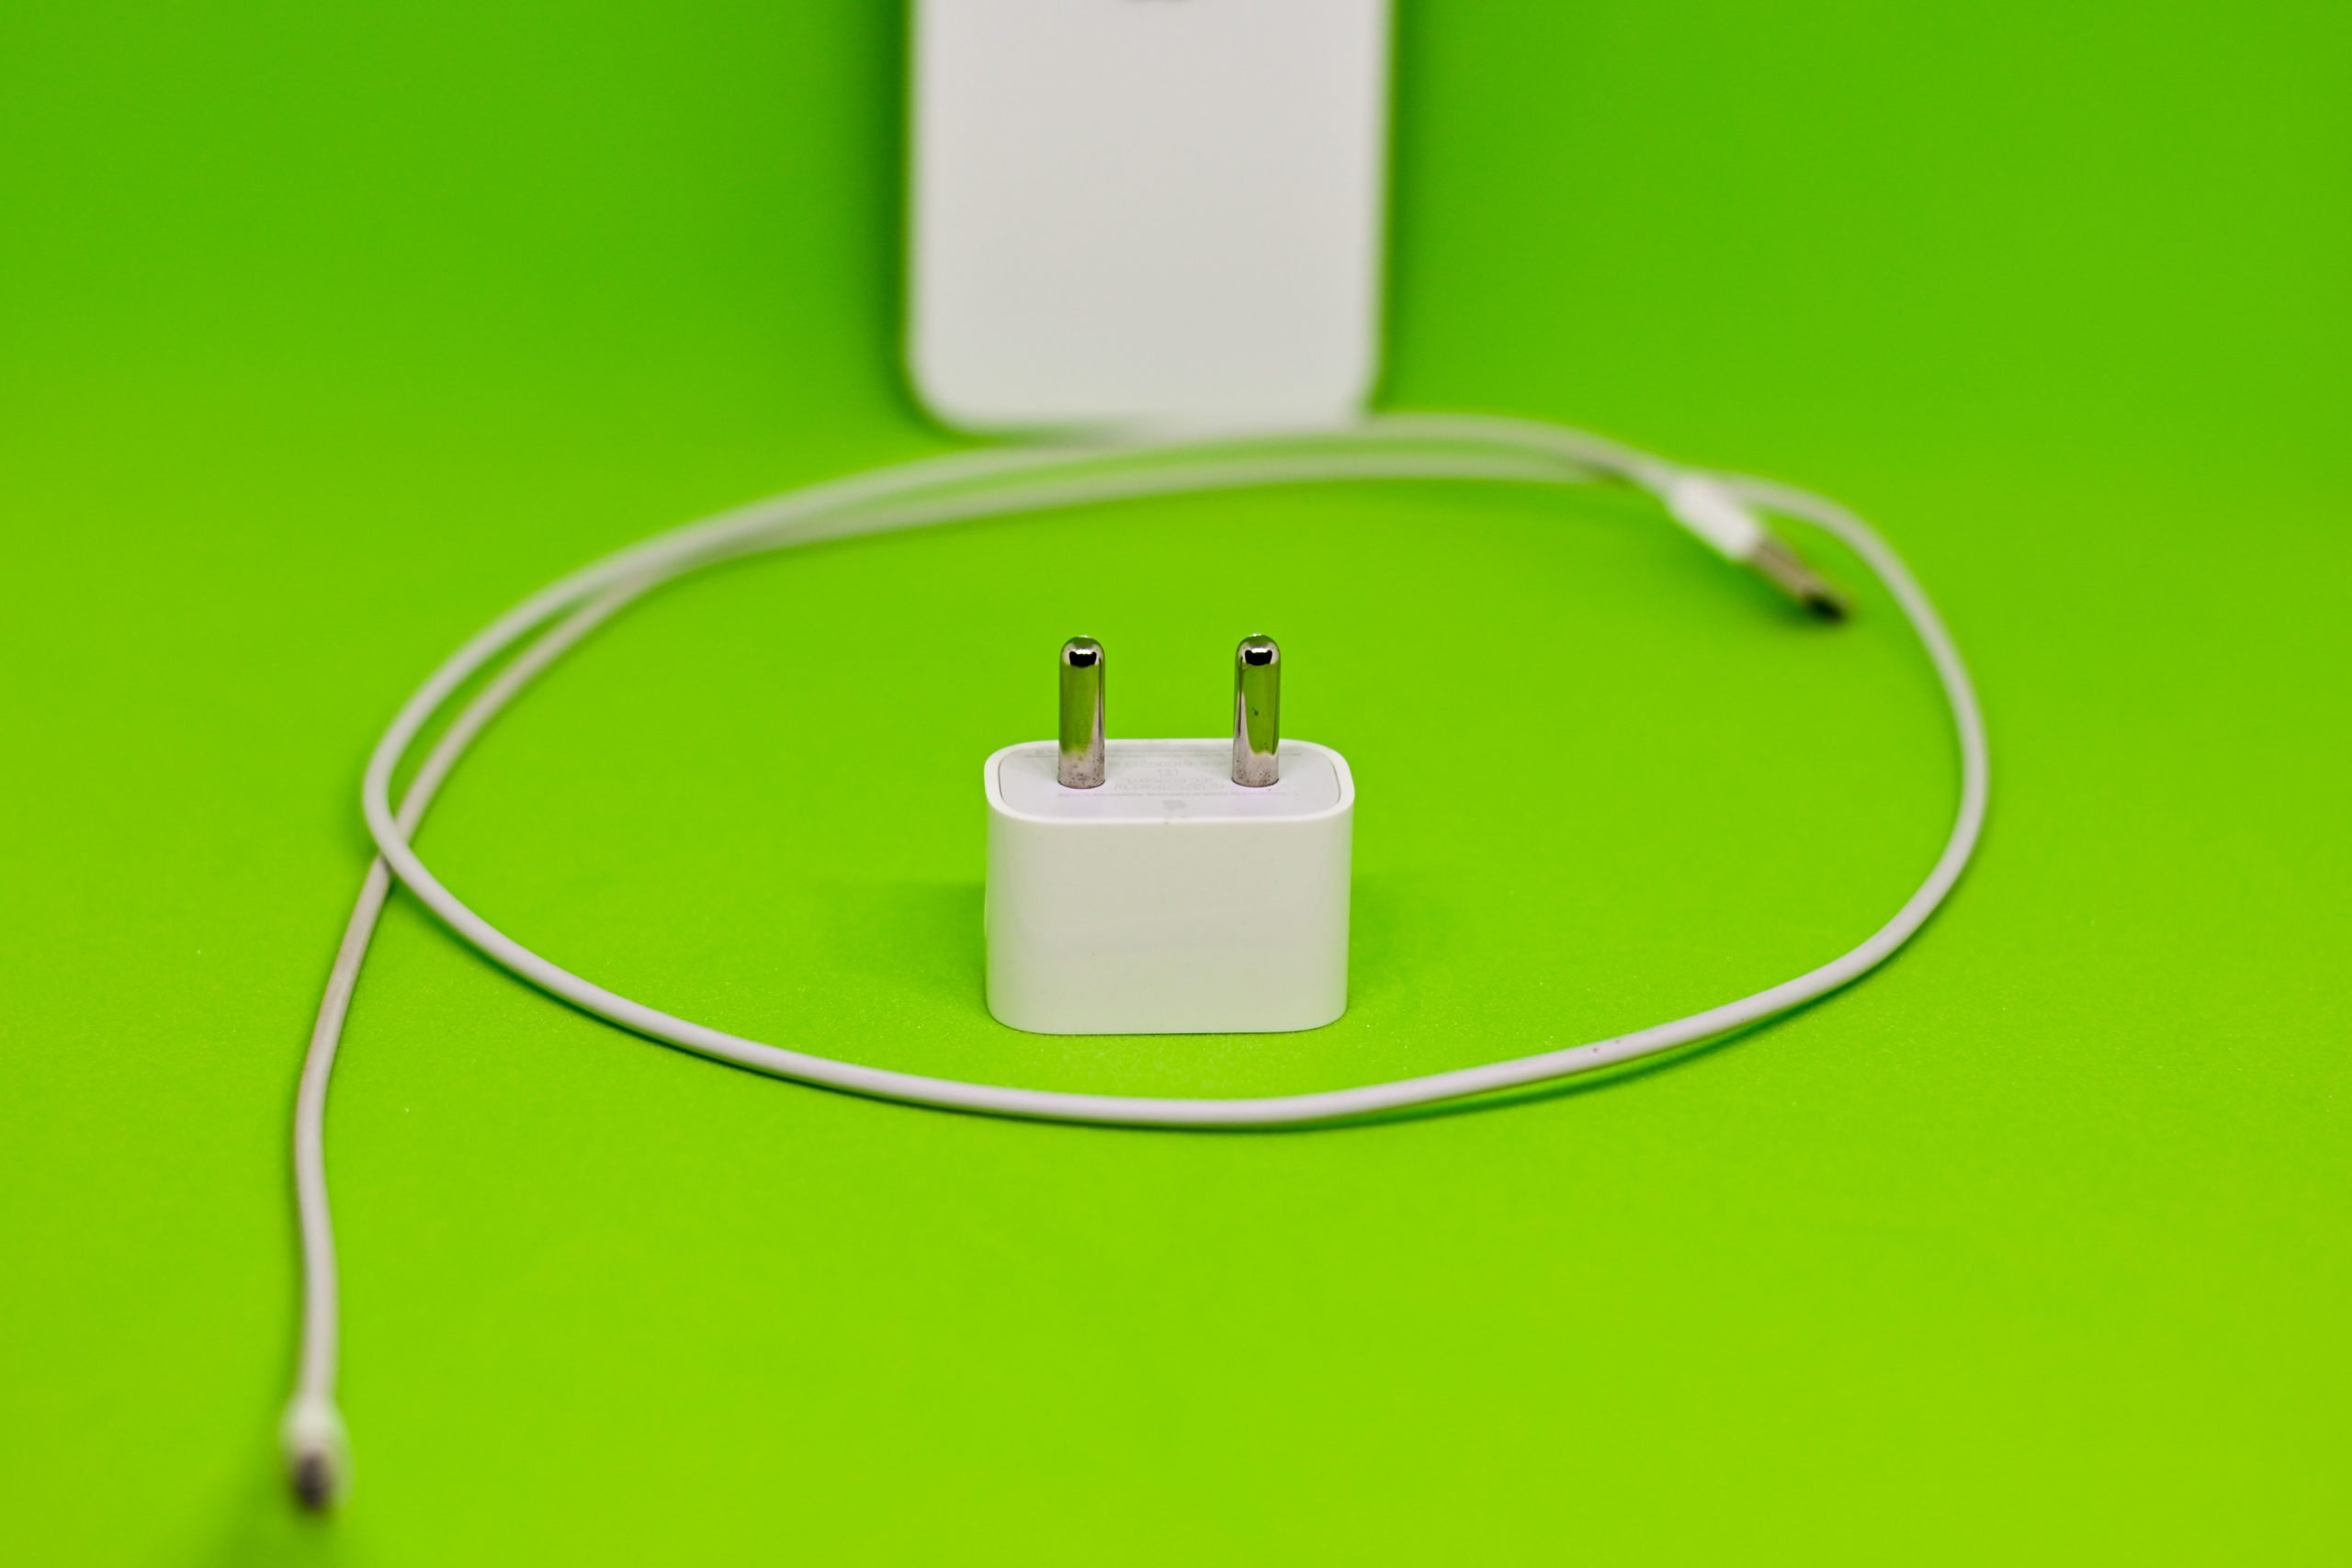 iphone charger